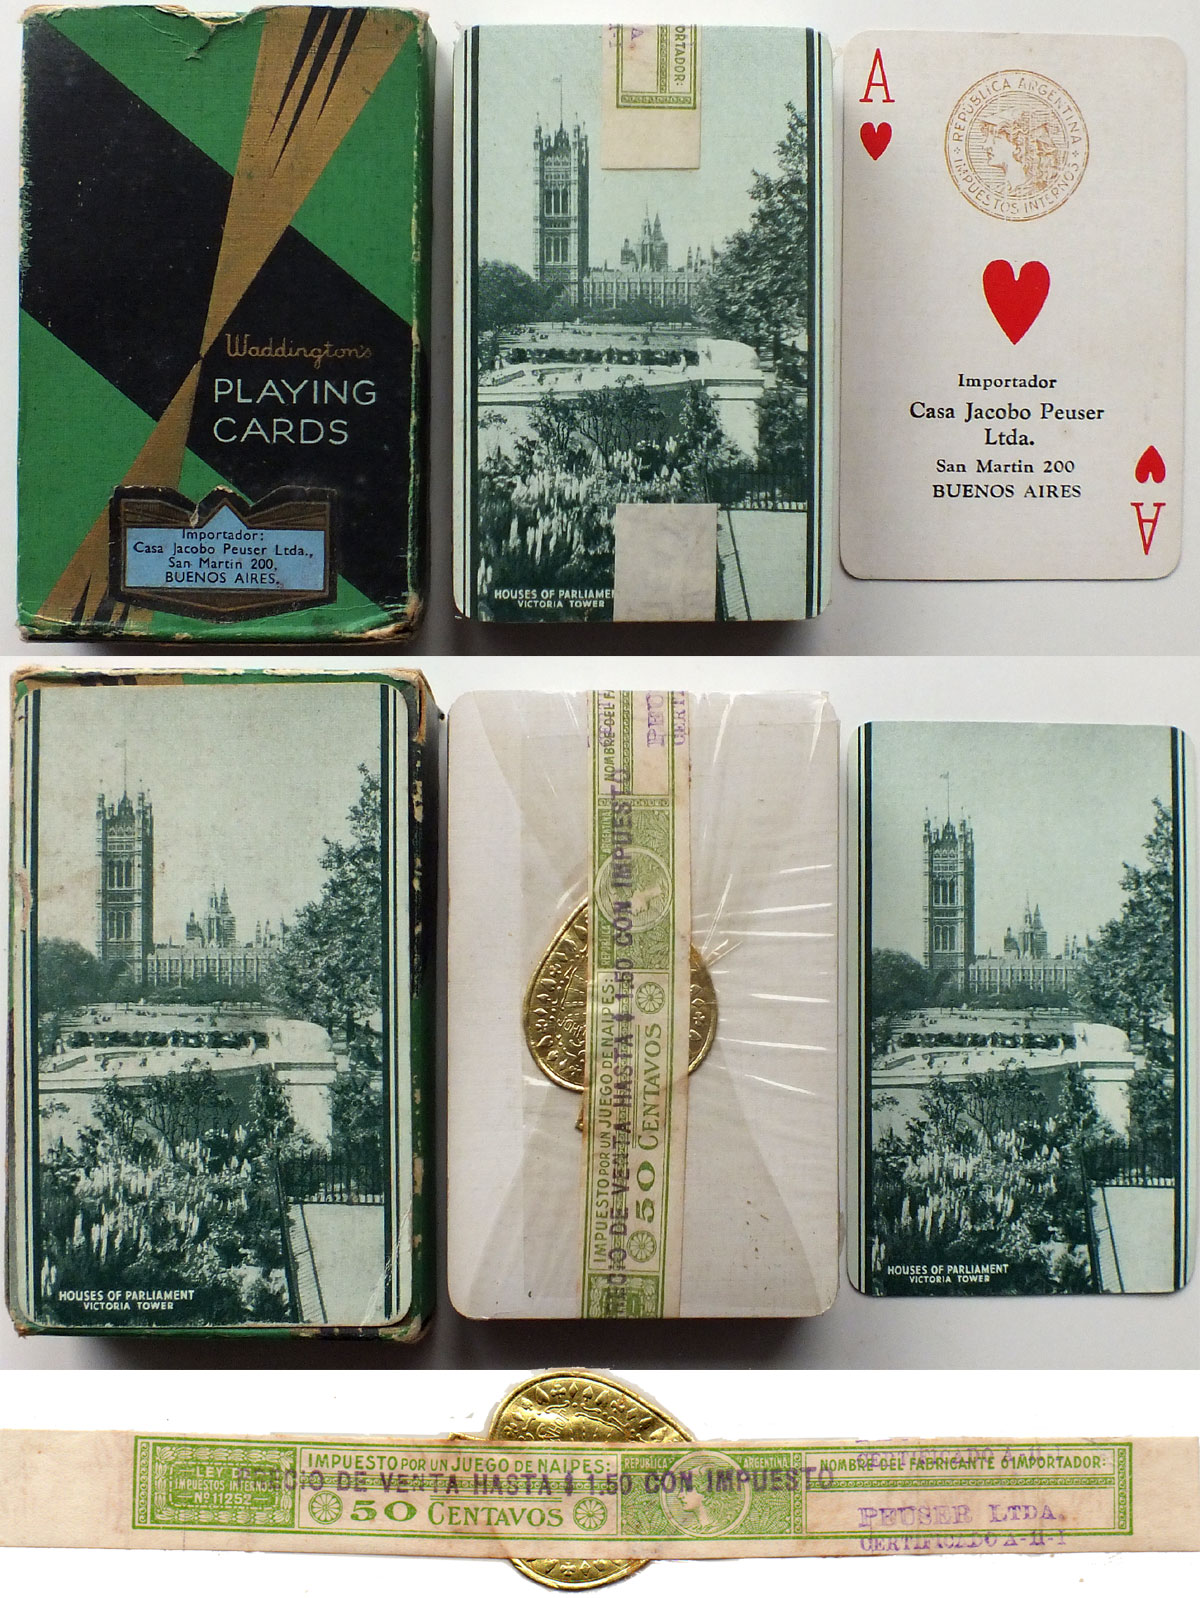 Playing cards featuring the Houses of Parliament / Victoria Tower (London) manufactured in England by John Waddington, imported into Argentina by Casa Jacobo Peuser Ltda, c.1938